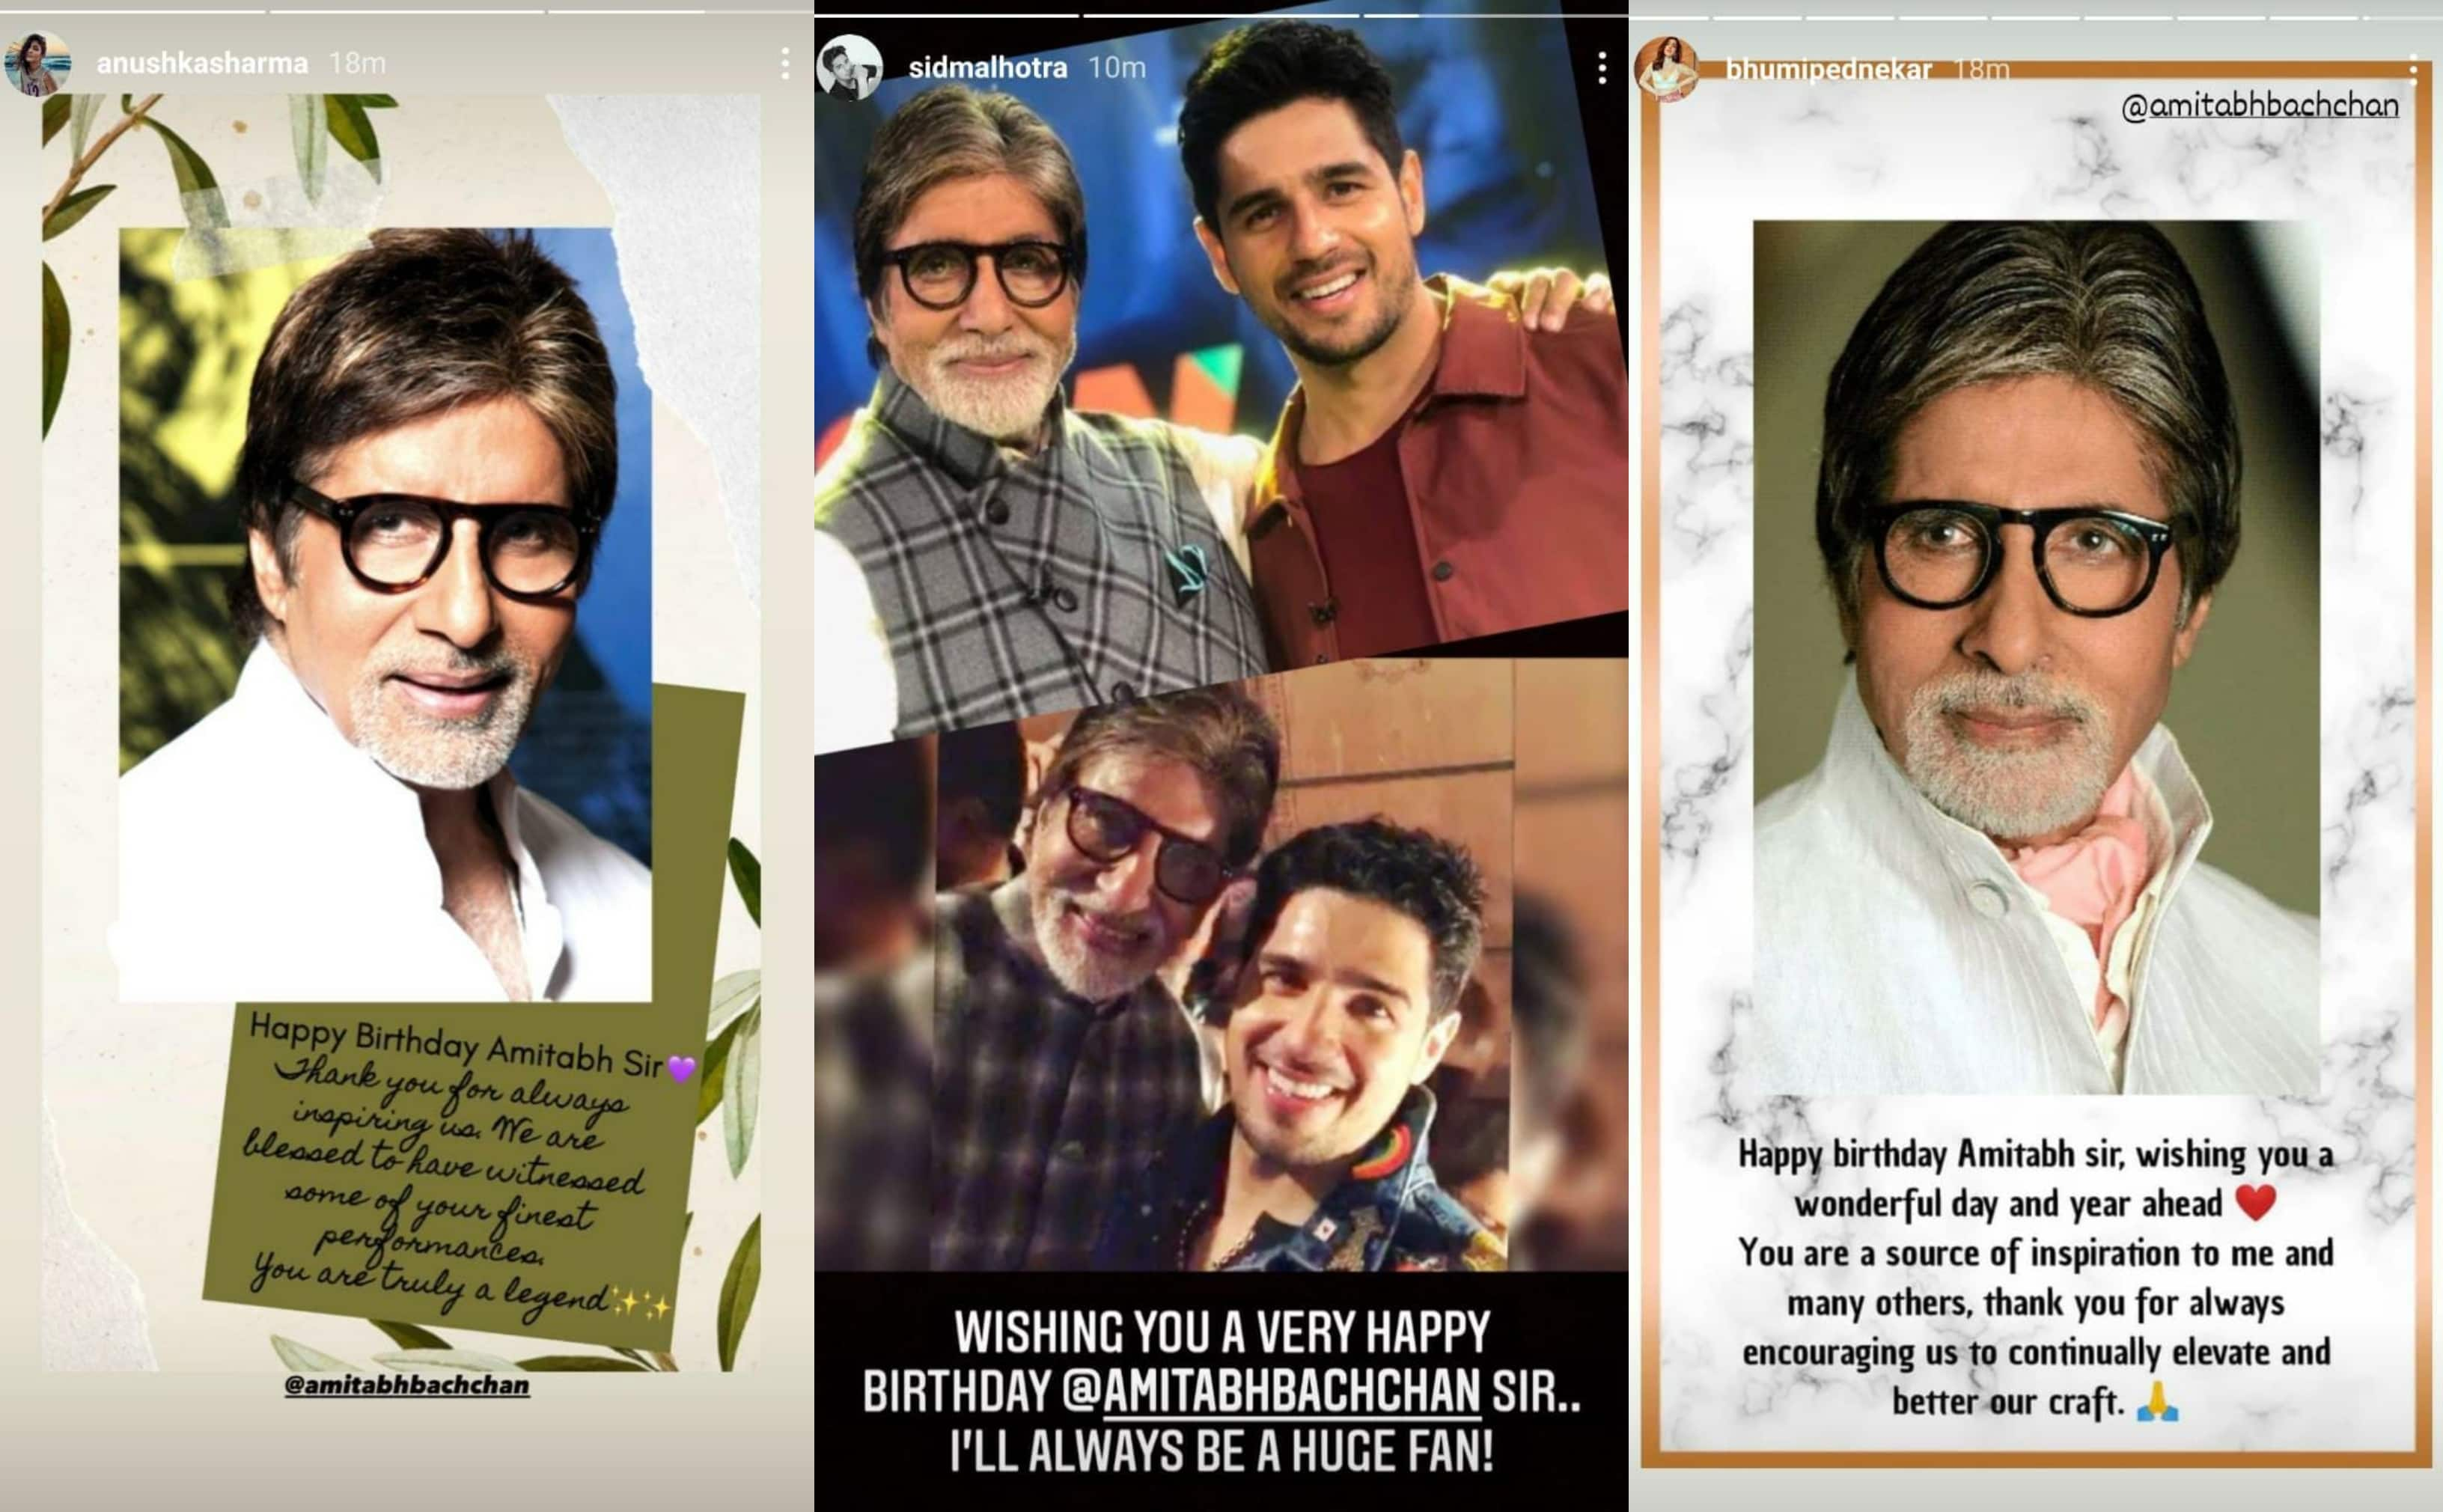 Happy Birthday Amitabh Bachchan: Priyanka Chopra, Prabhas And Others Shower The Legend With Love